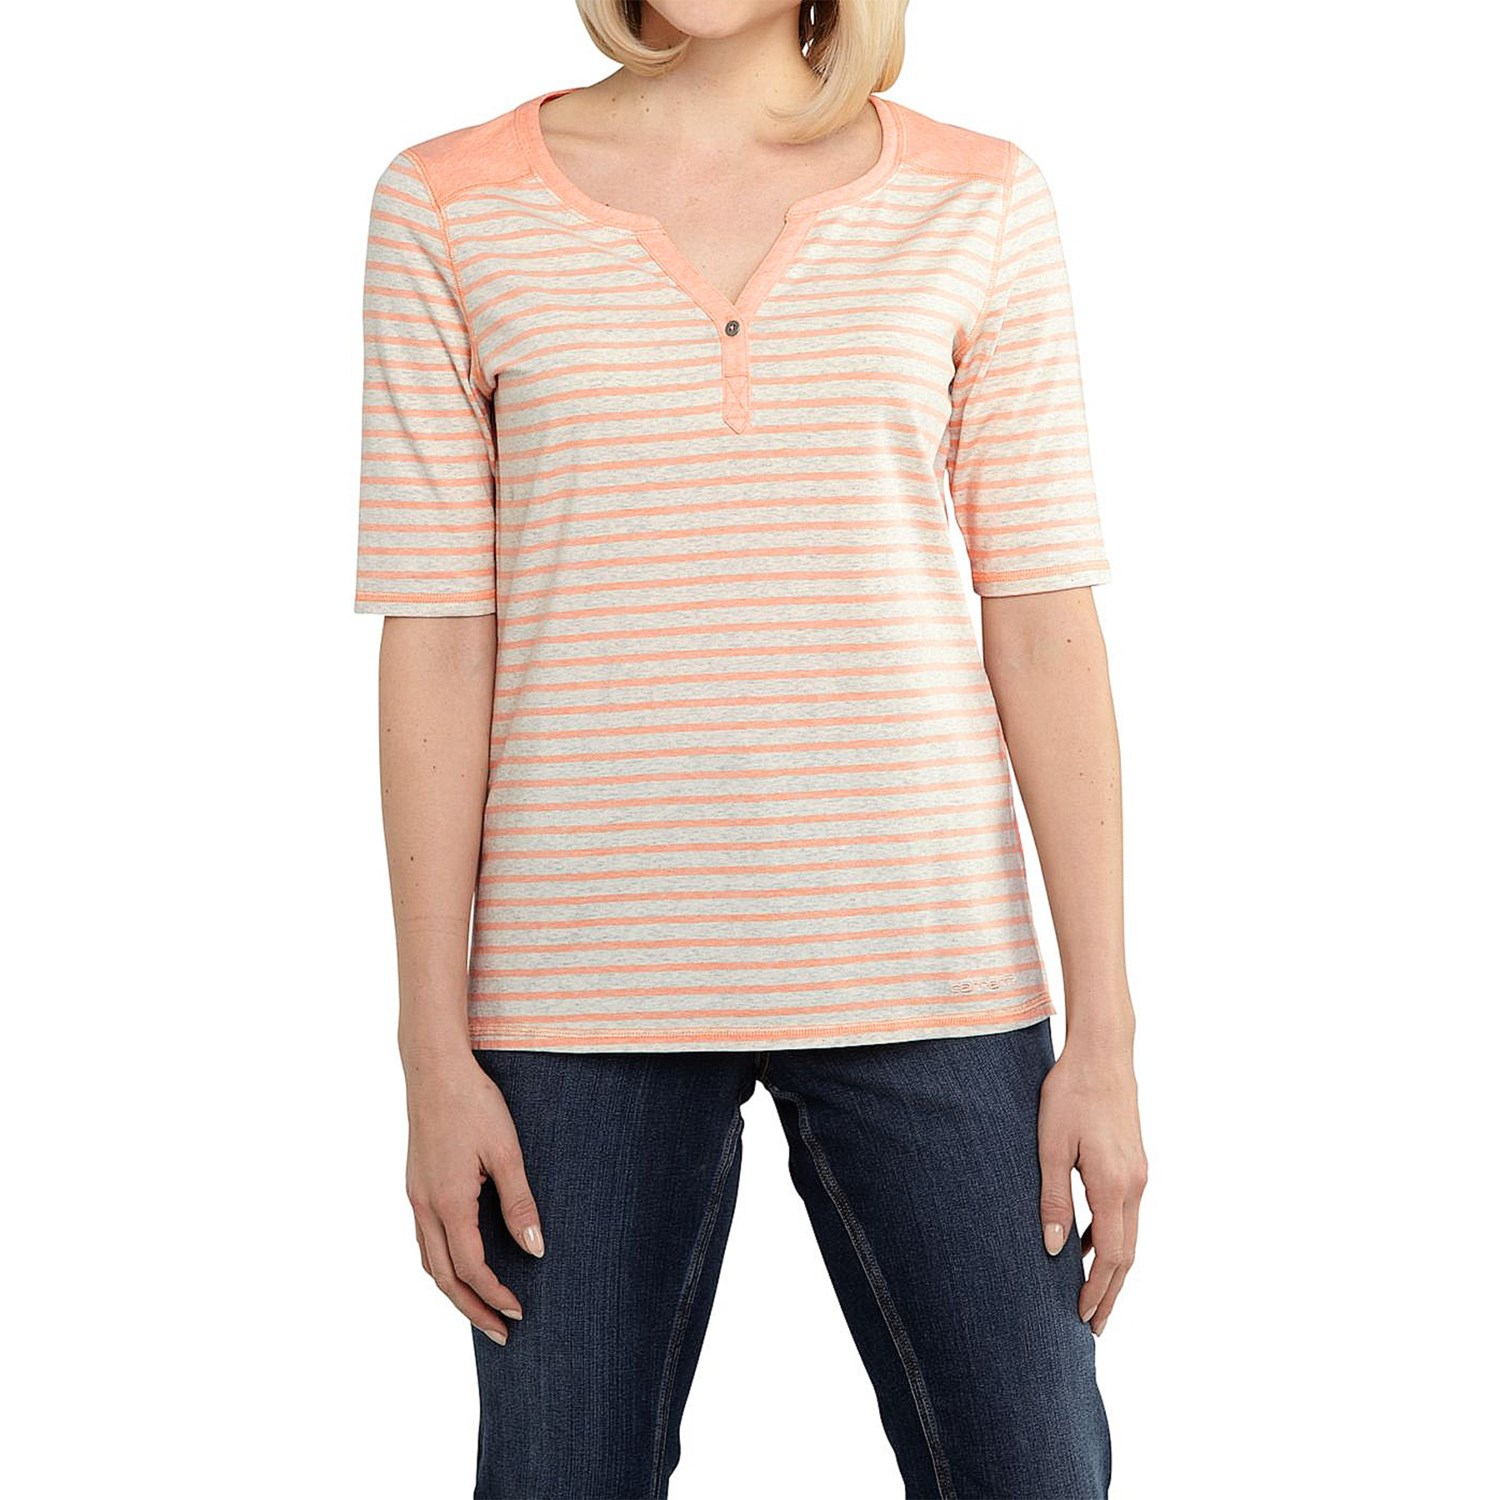 The Soft & Sexy Henley T-Shirt takes the womens Henley shirts and gives them the Soft & Sexy treatment with a soft jersey material made from rayon and elastane. This gives the top just a touch of stretch while having a soft, slinky feel.